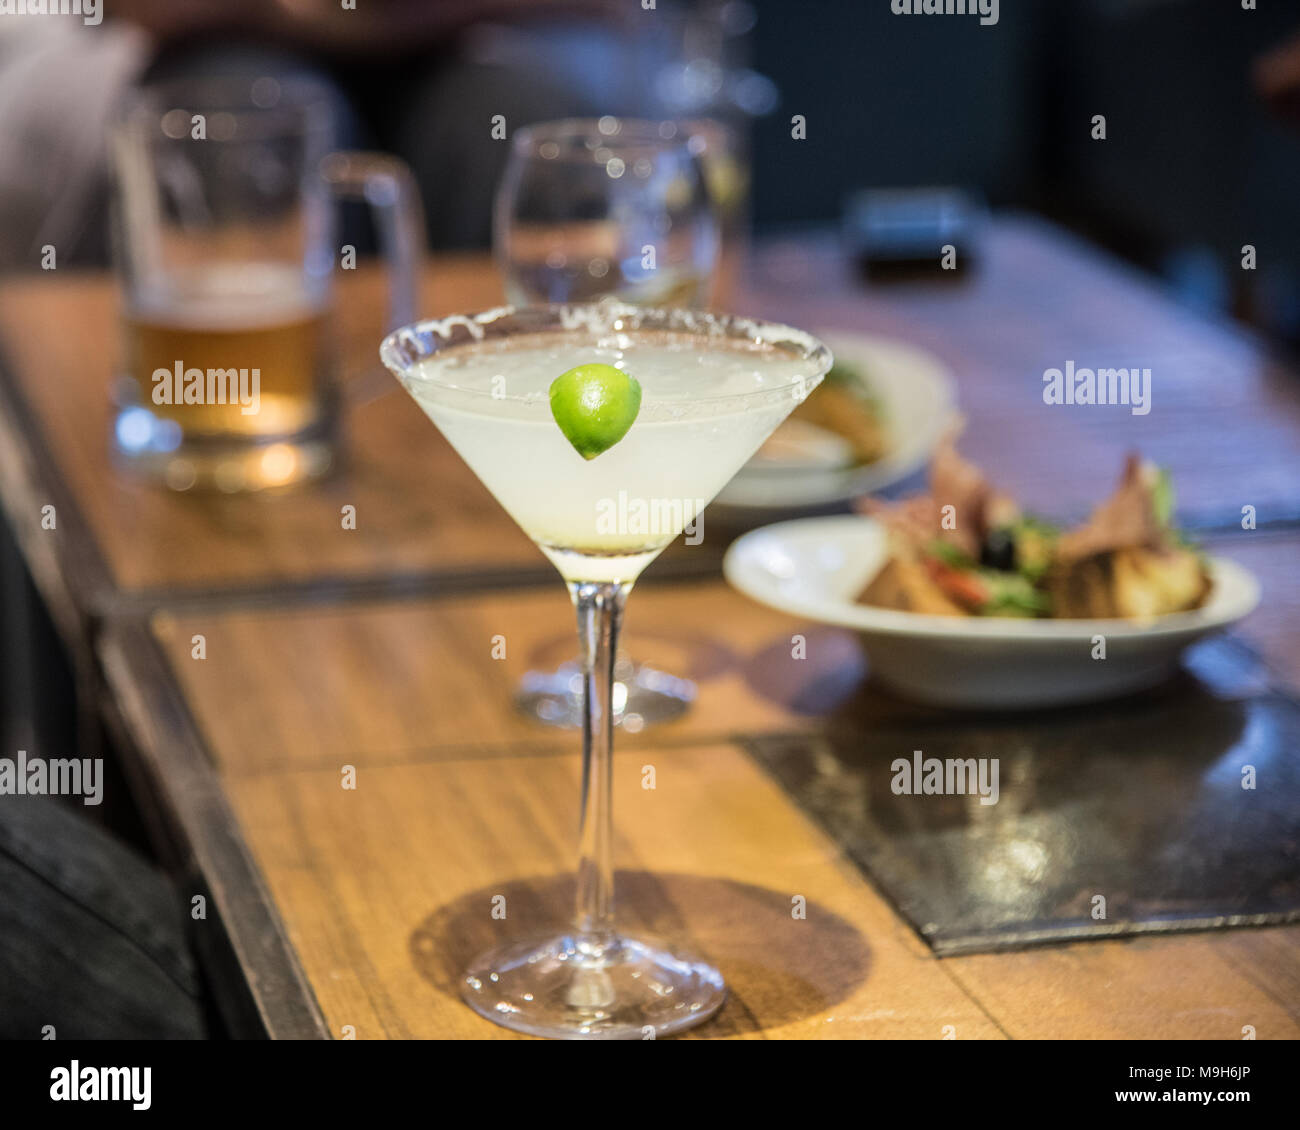 A margarita drink sits on a table in focus. In the background are a variety of alcoholic drinks including beer and wine. - Stock Image